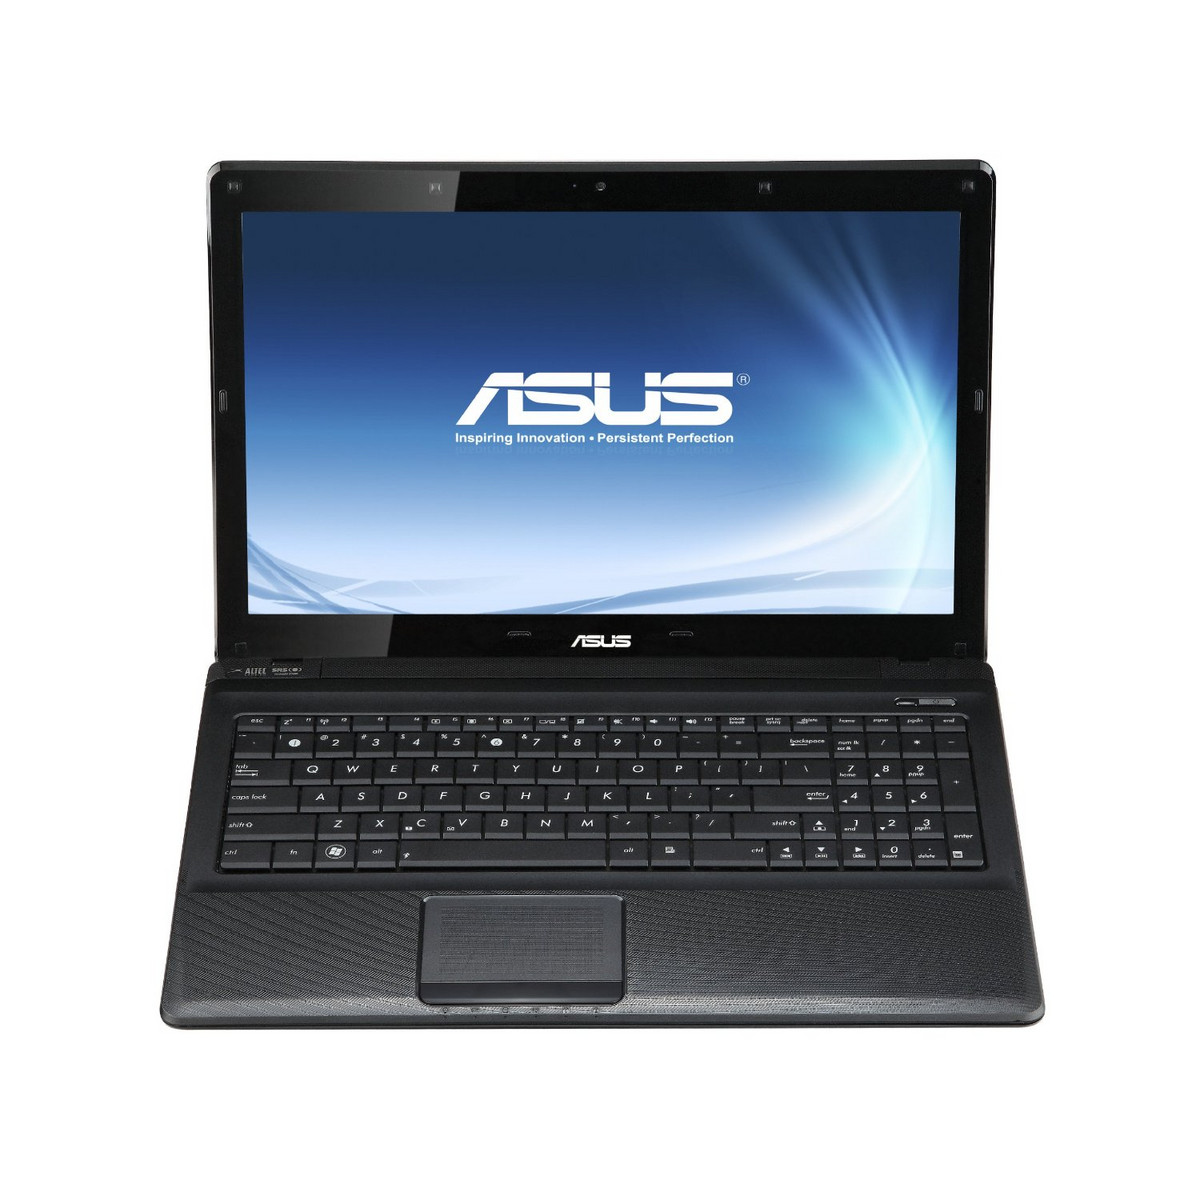 ASUS K52JB TURBO BOOST MONITOR DRIVERS DOWNLOAD FREE